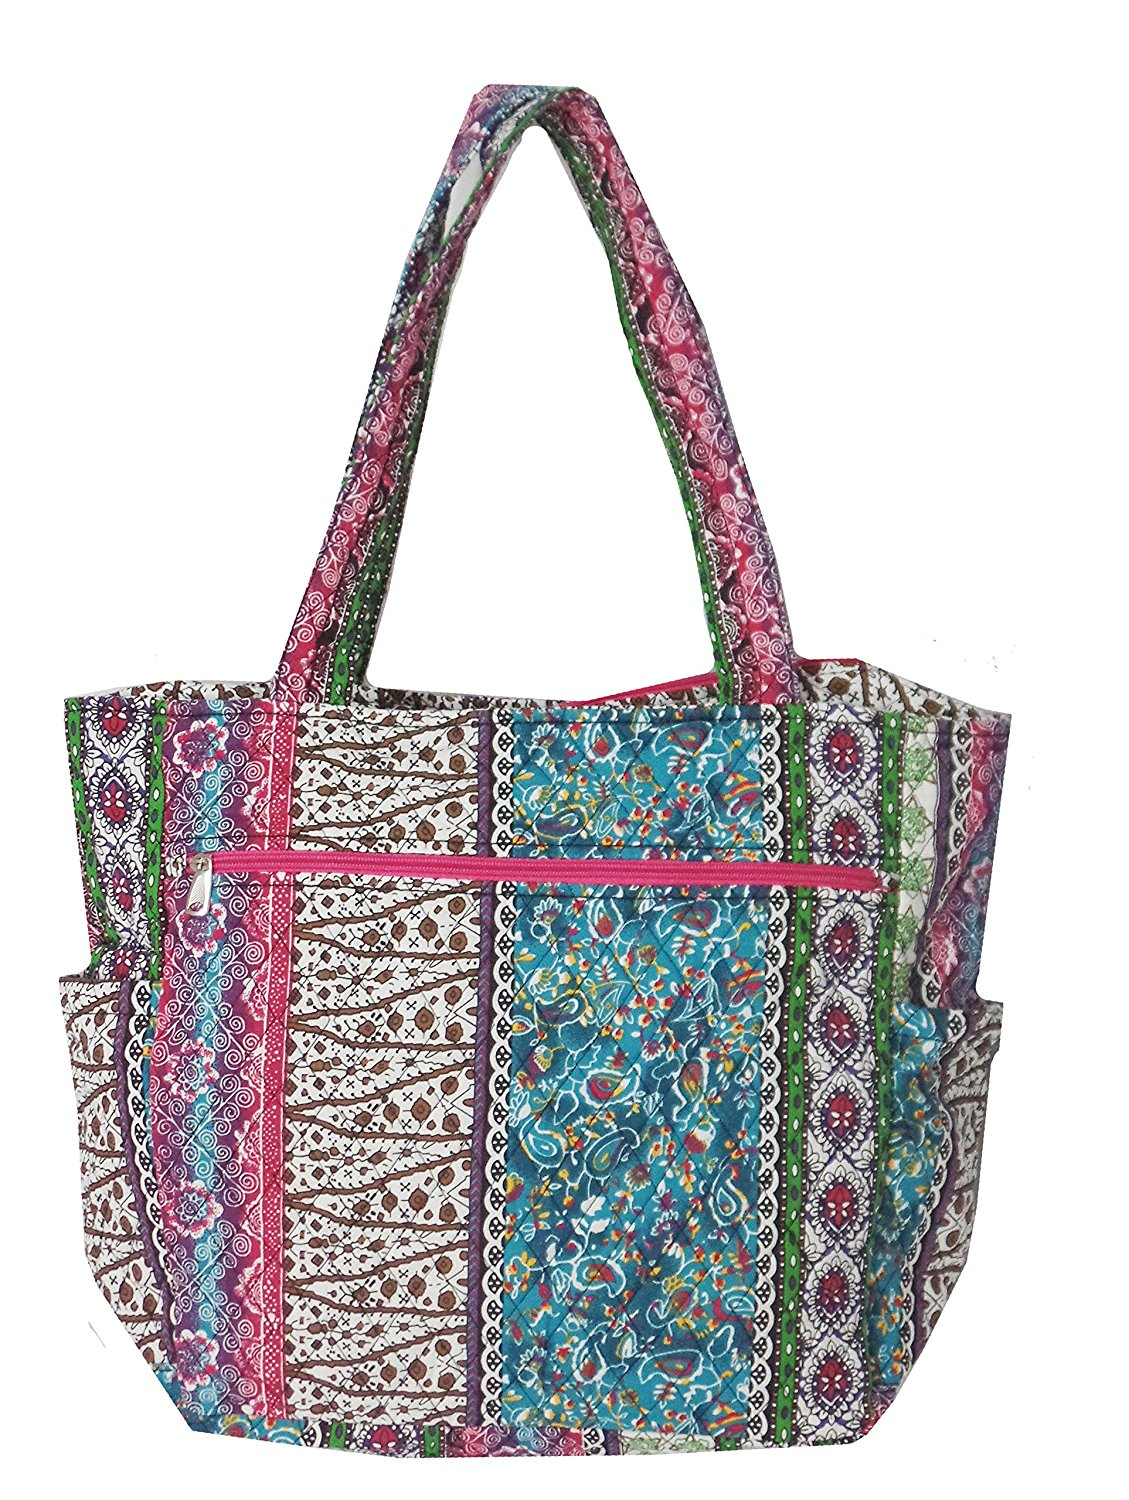 Cheap Free Quilted Tote Bag Patterns Find Free Quilted Tote Bag